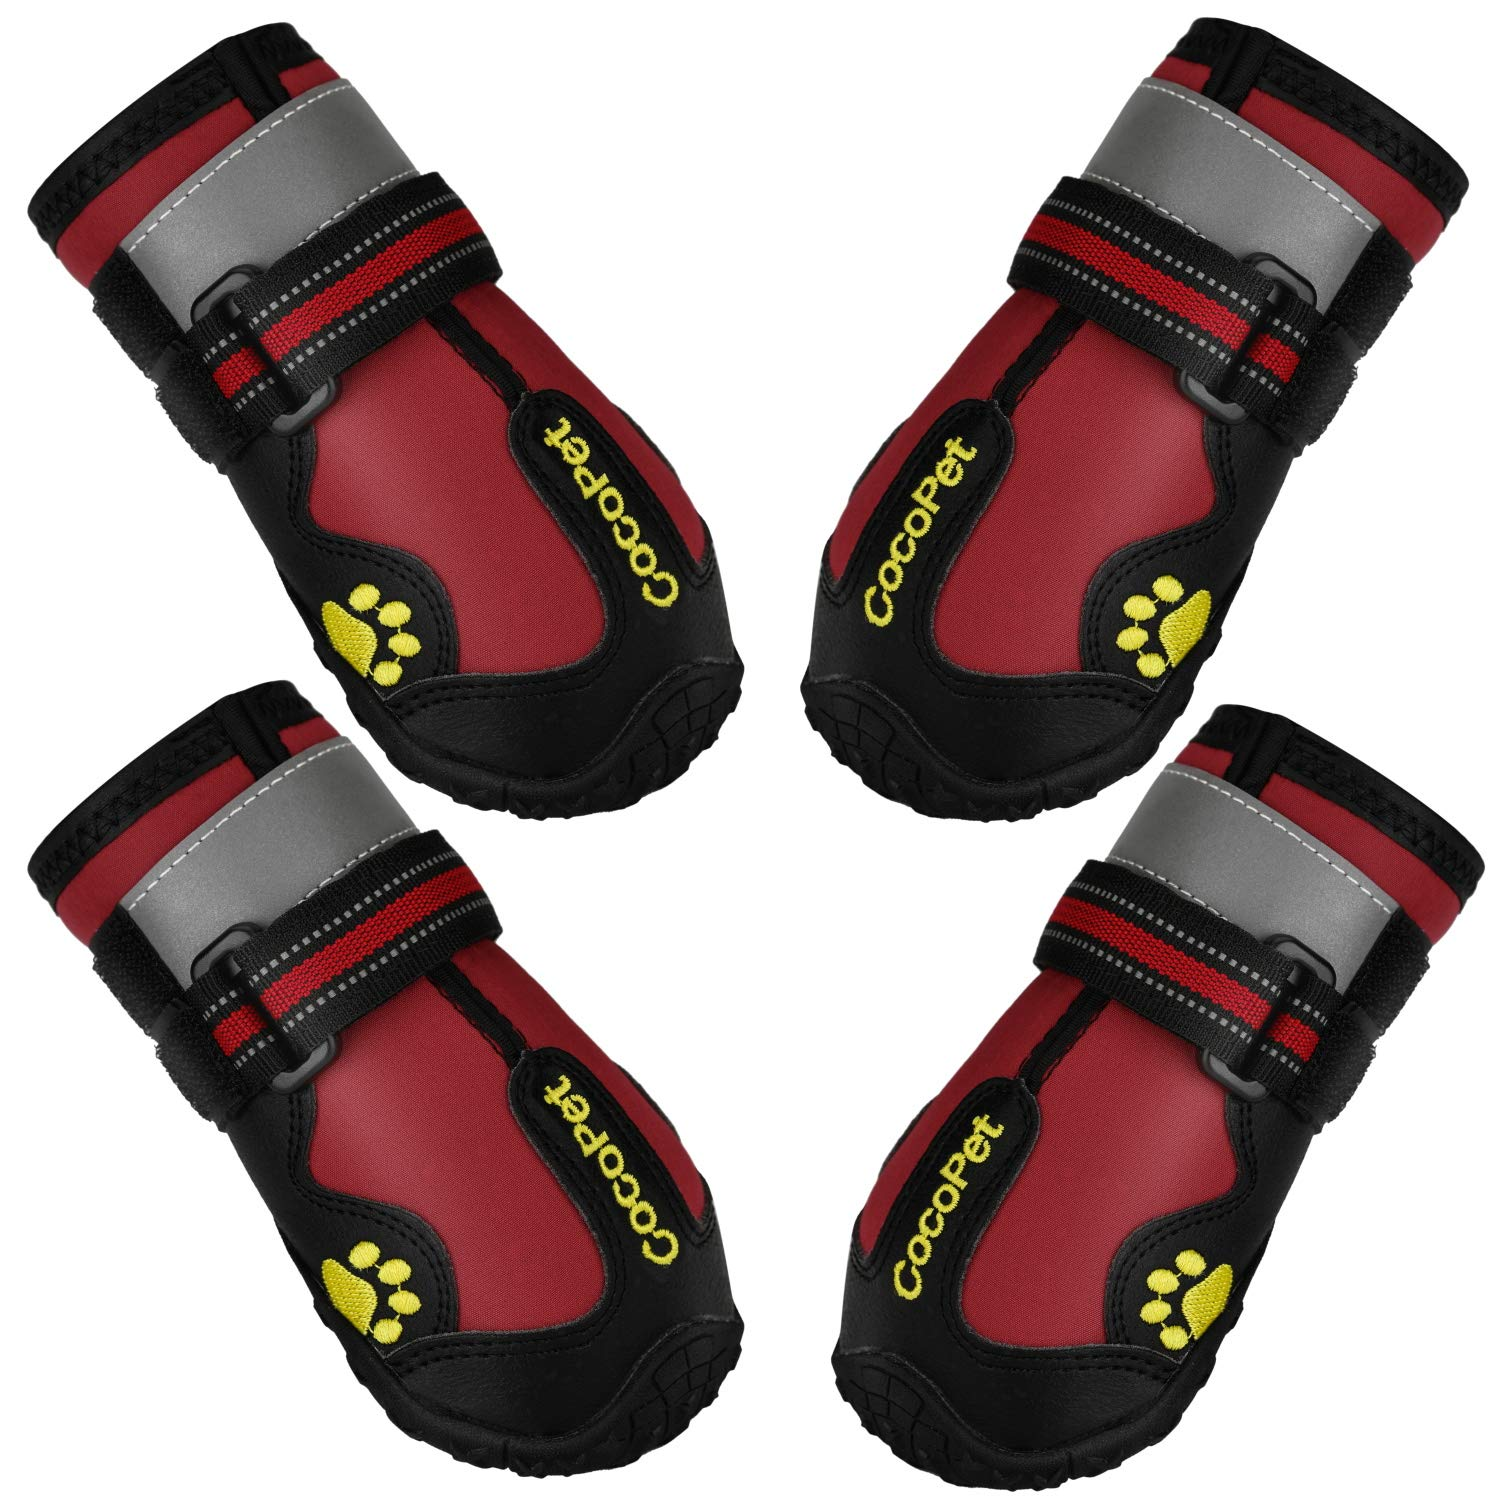 COCOPET Waterproof Dog Boots for Medium Large Dogs with Safe Reflective Velcro Rugged Anti-Slip,Running Dog Shoes for Paw Protection 4 PCS by cocopet